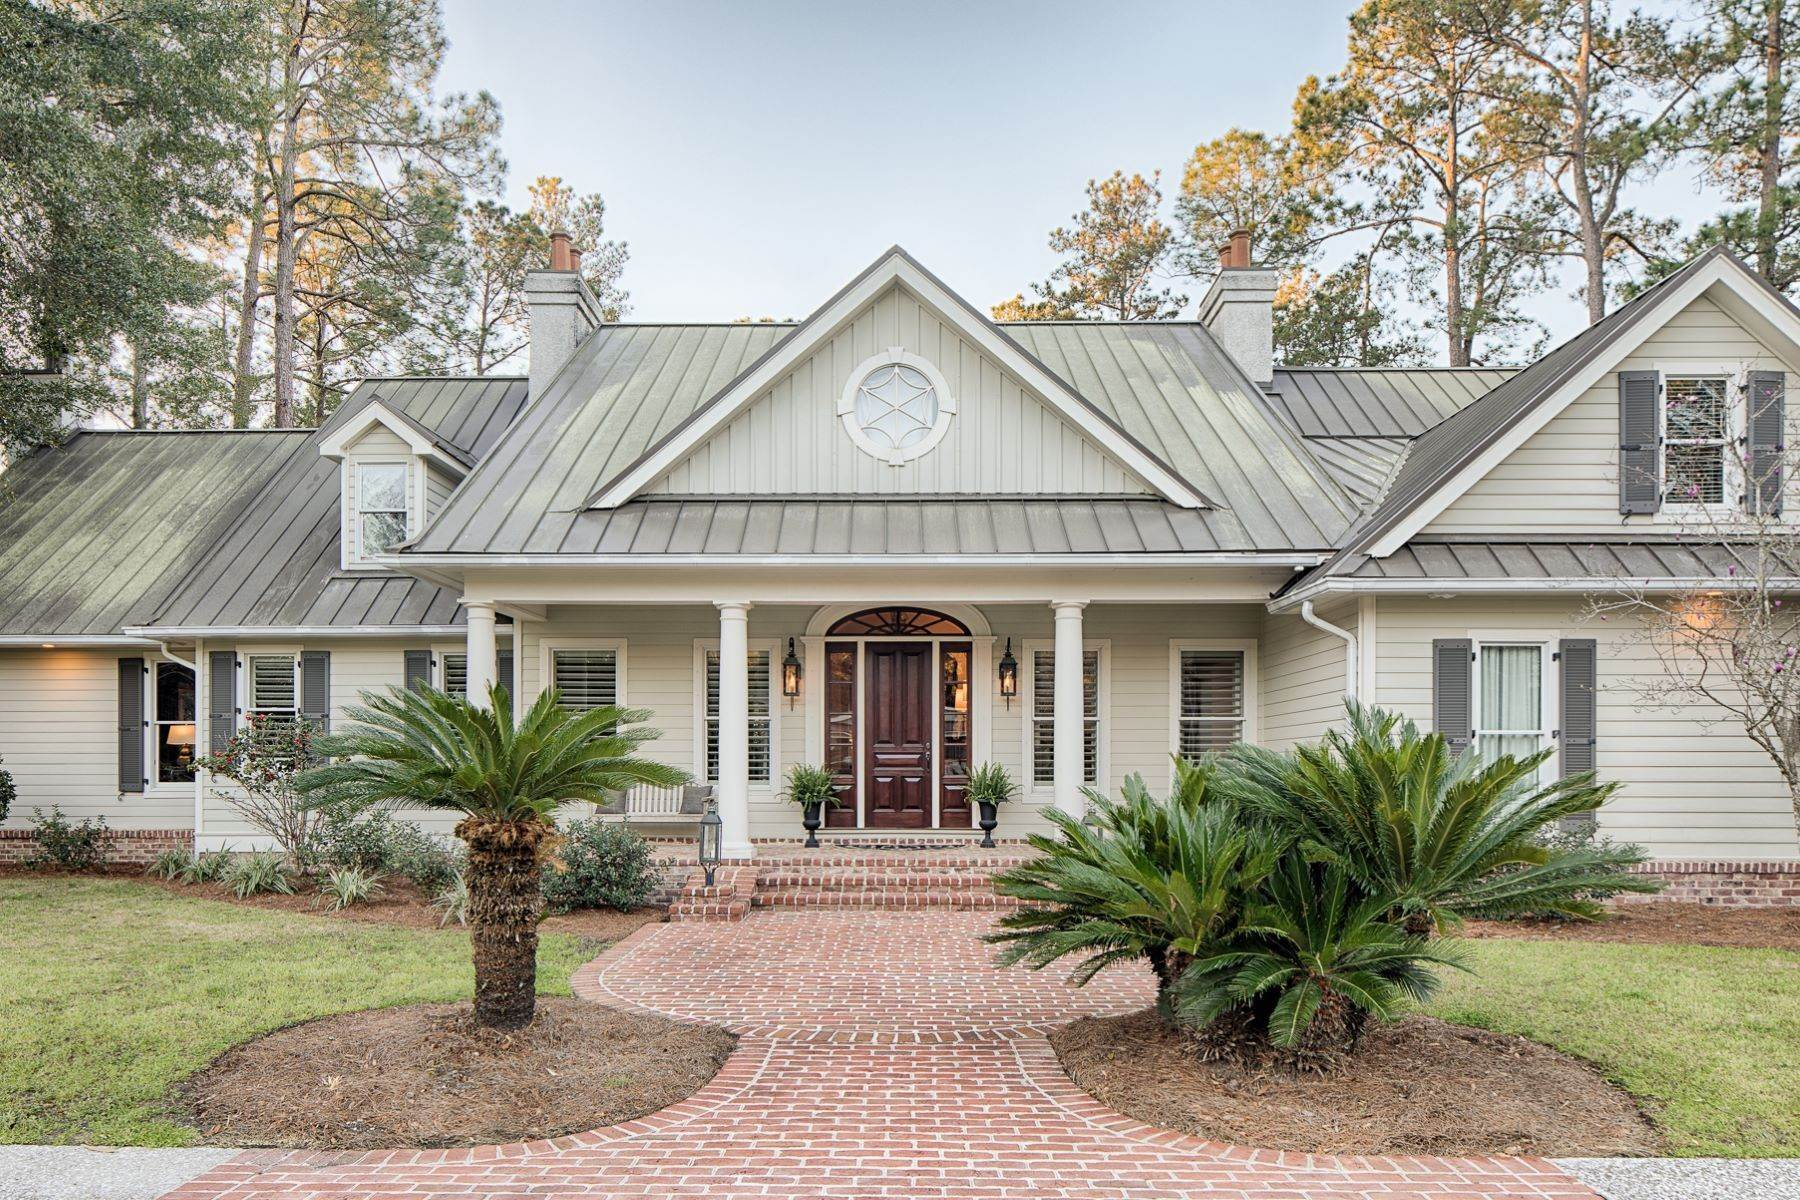 8. Single Family Homes for Sale at 7 Acres in Gascoigne Bluff 155 Gascoigne Bluff Road Bluffton, South Carolina 29910 United States